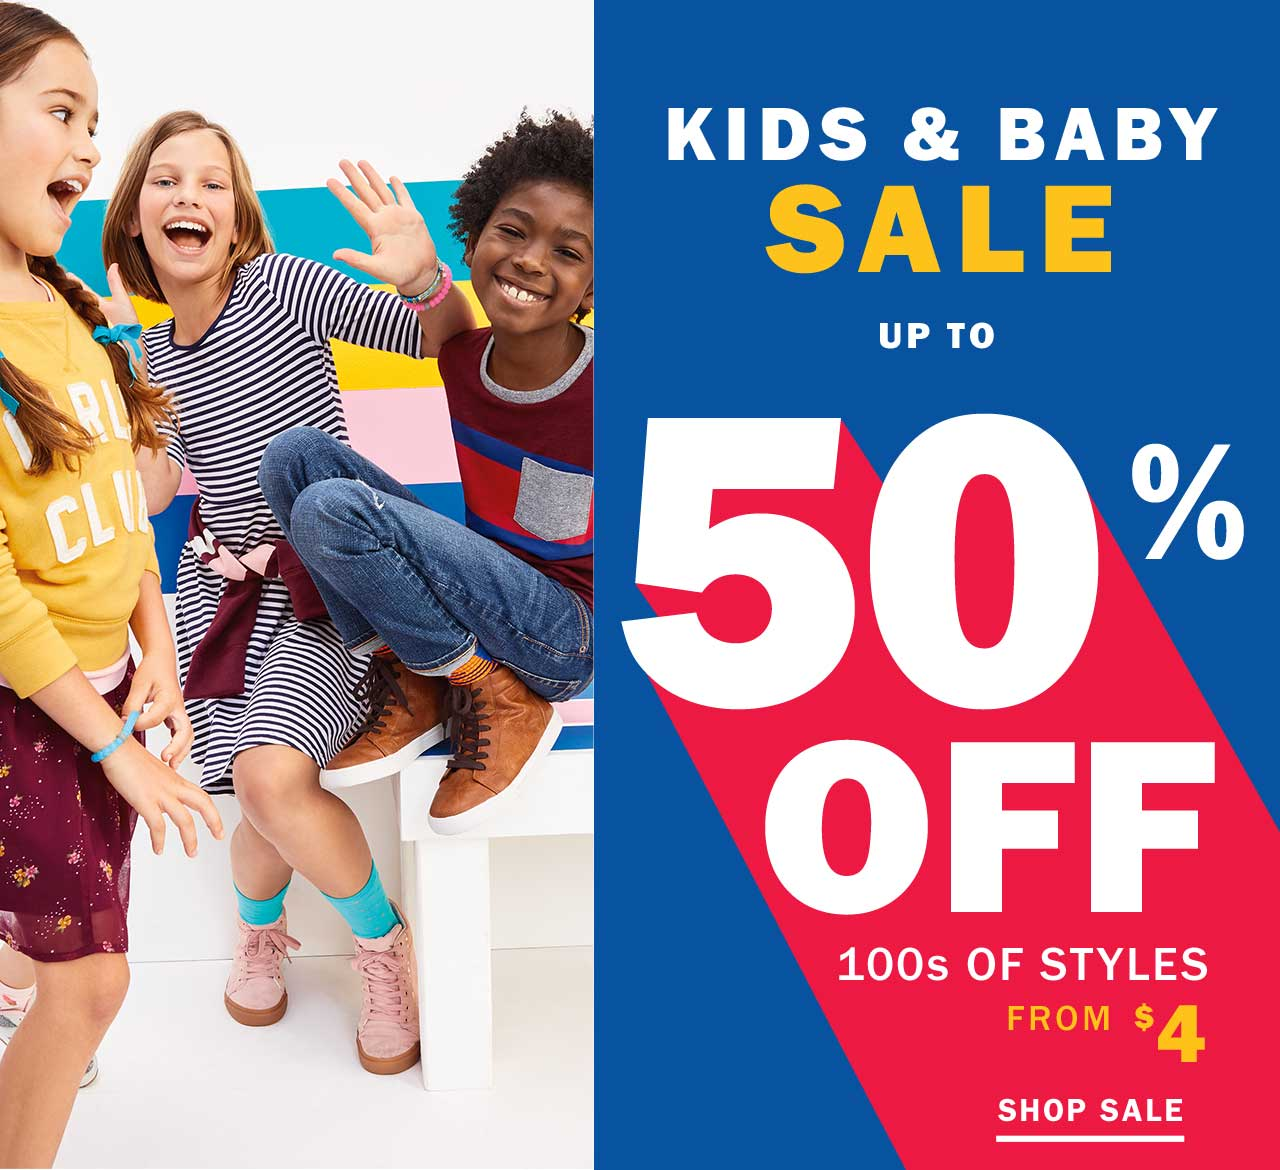 KIDS & BABY SALE UP TO 50% OFF | SHOP SALE